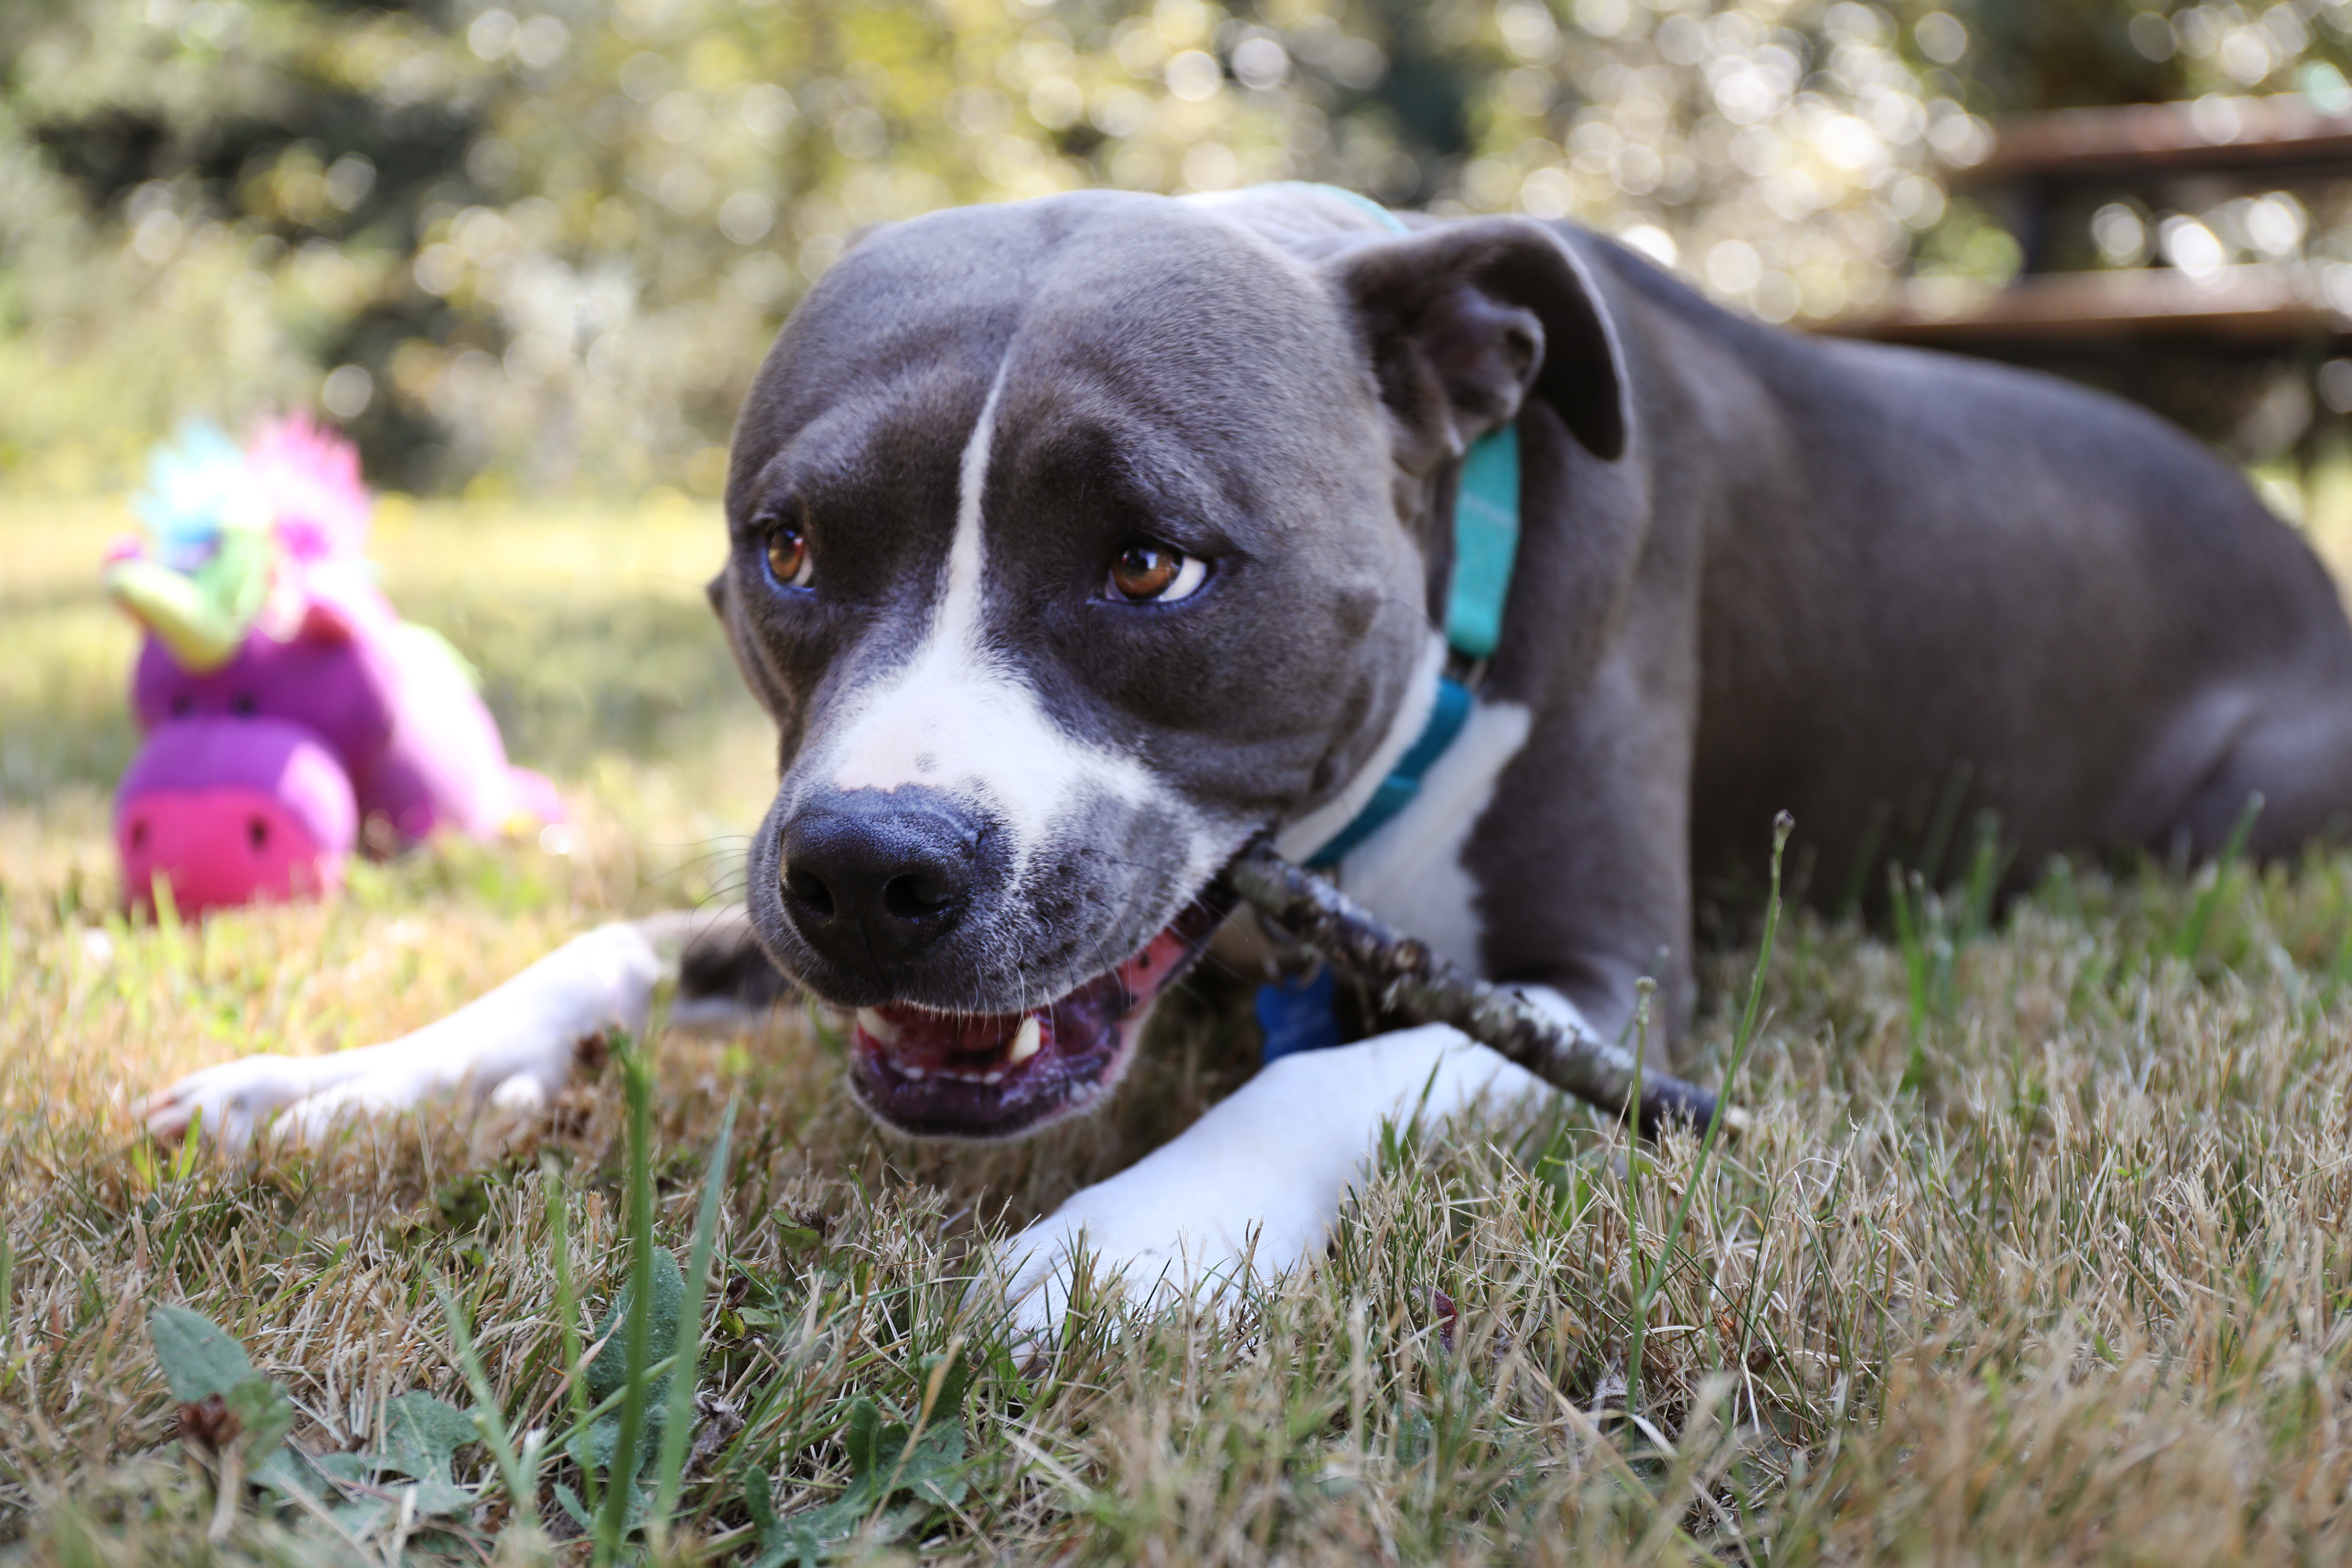 Cute, happy pitbull enjoying the last of a dog-friendly popsicle on a hot day